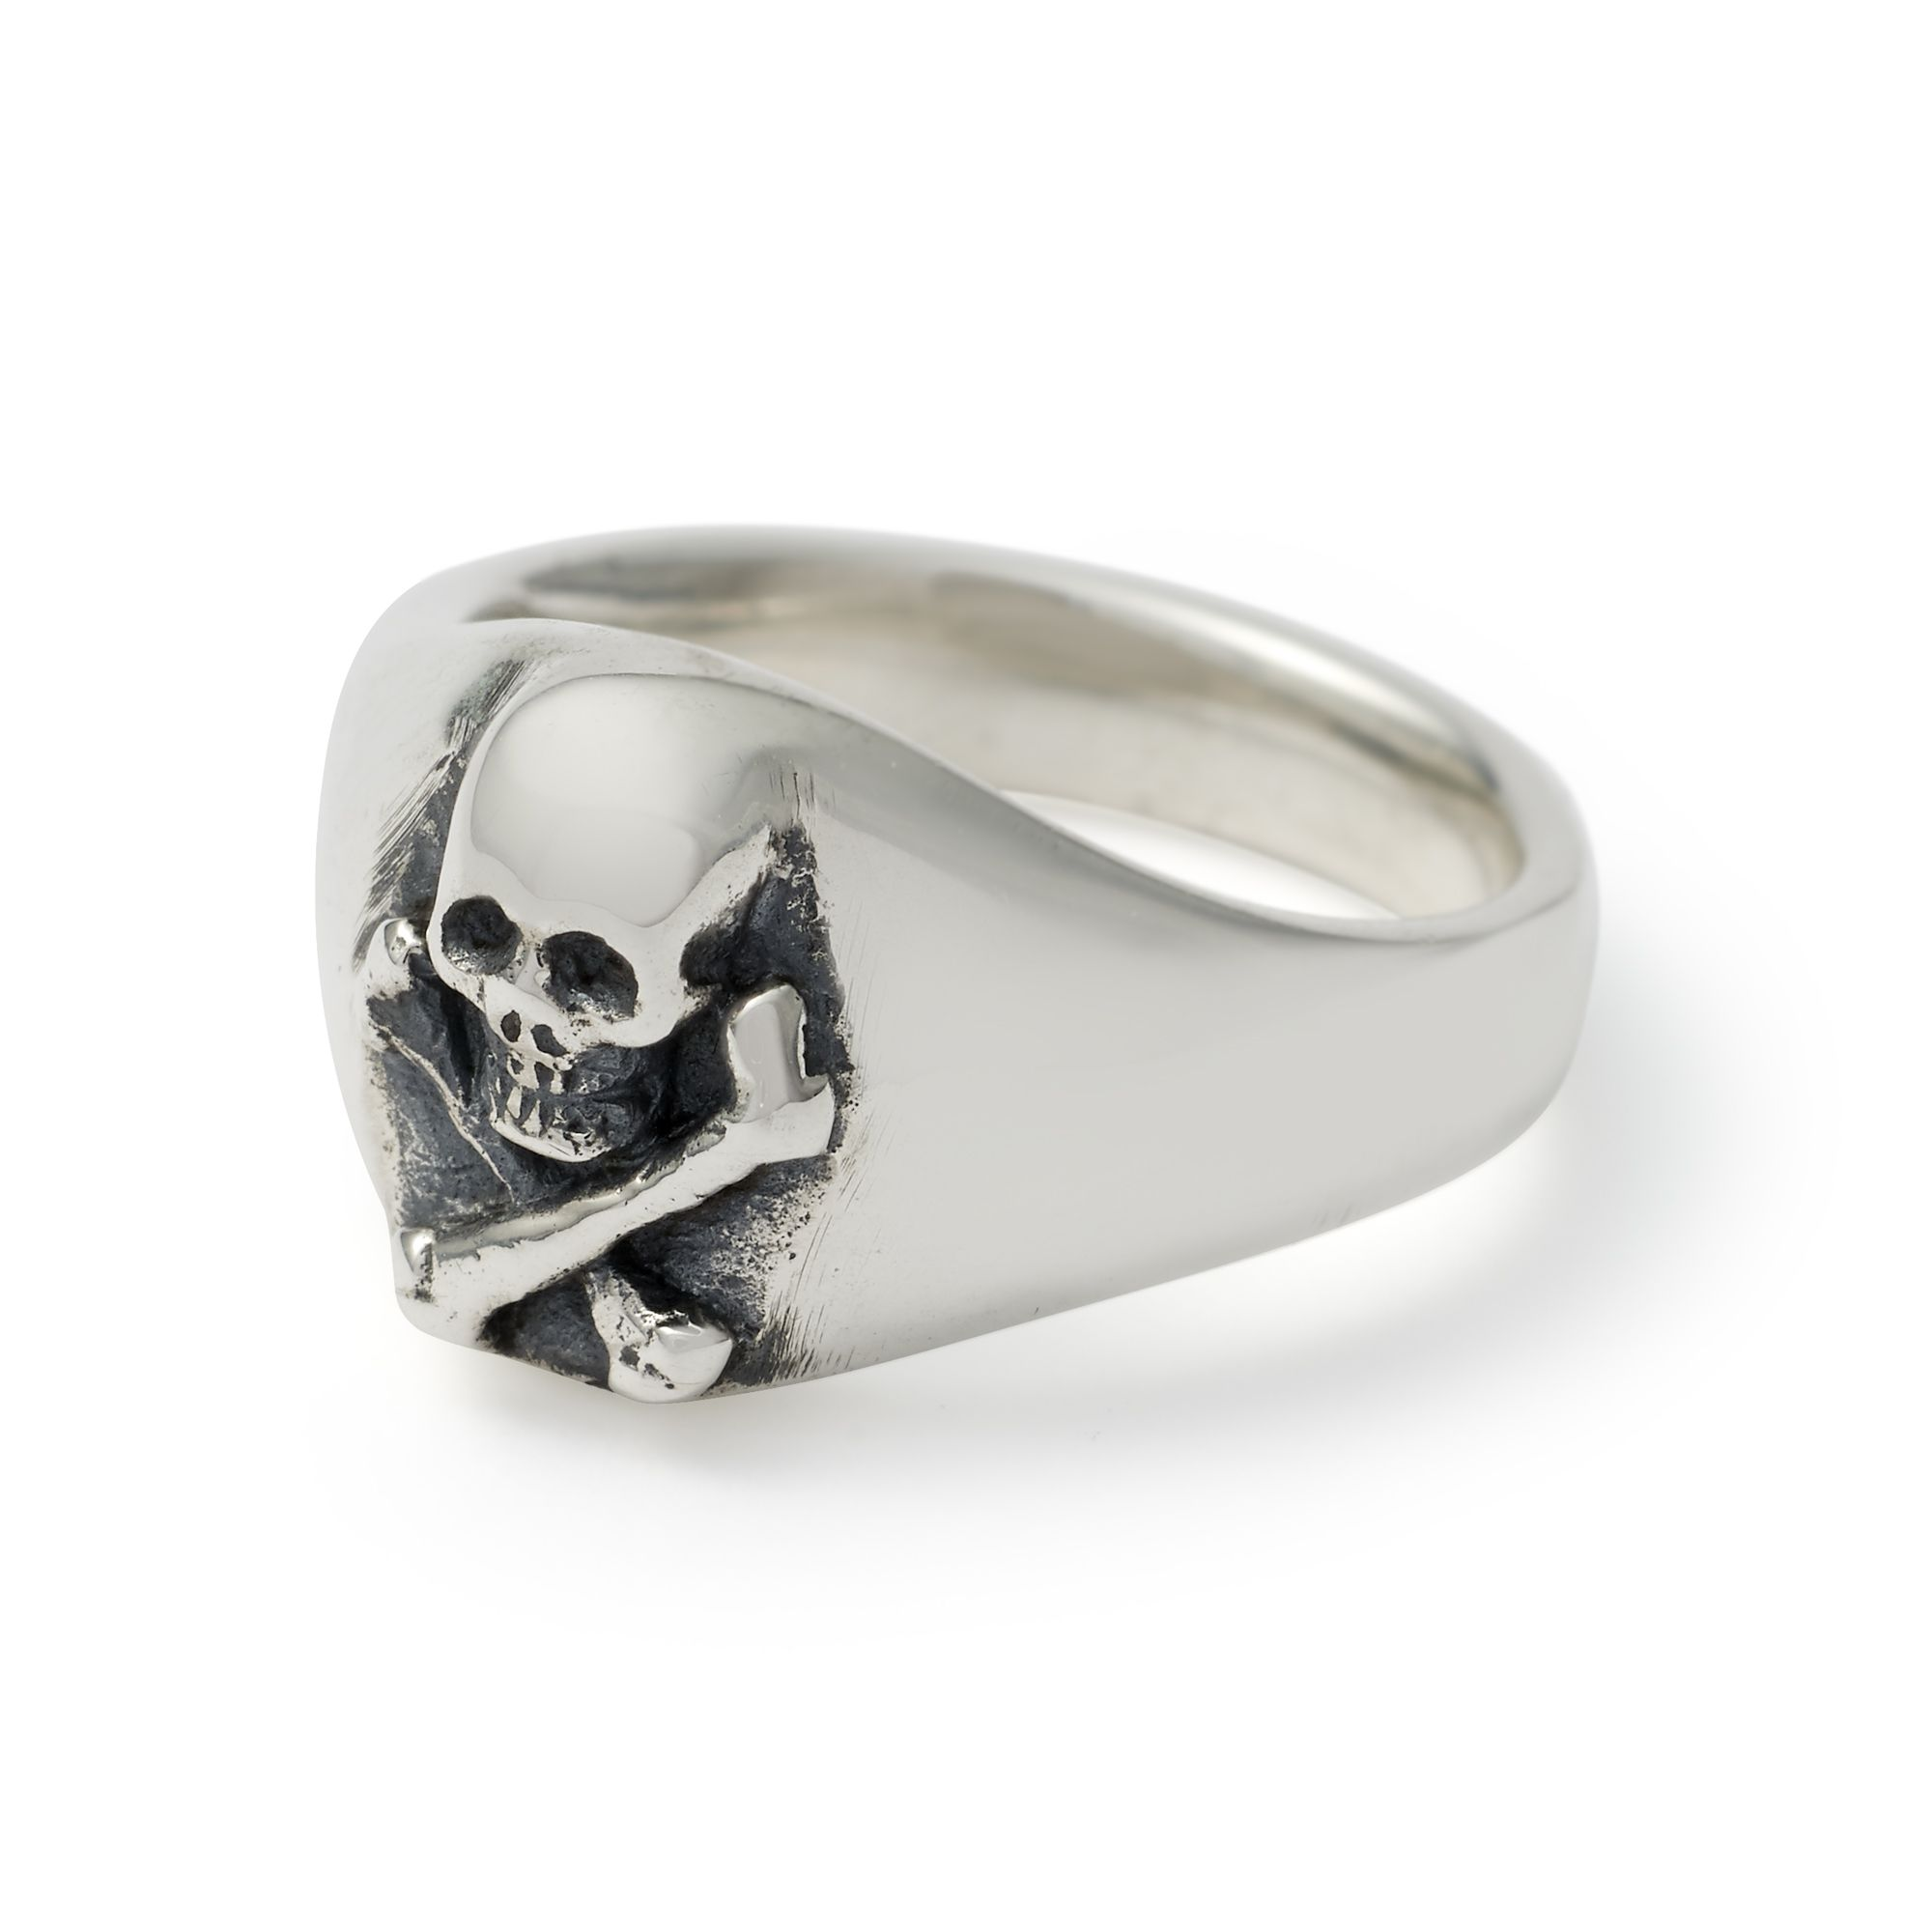 Small Skull Crossbones Signet Ring Skull Ring Small Skull Celtic Rings Women